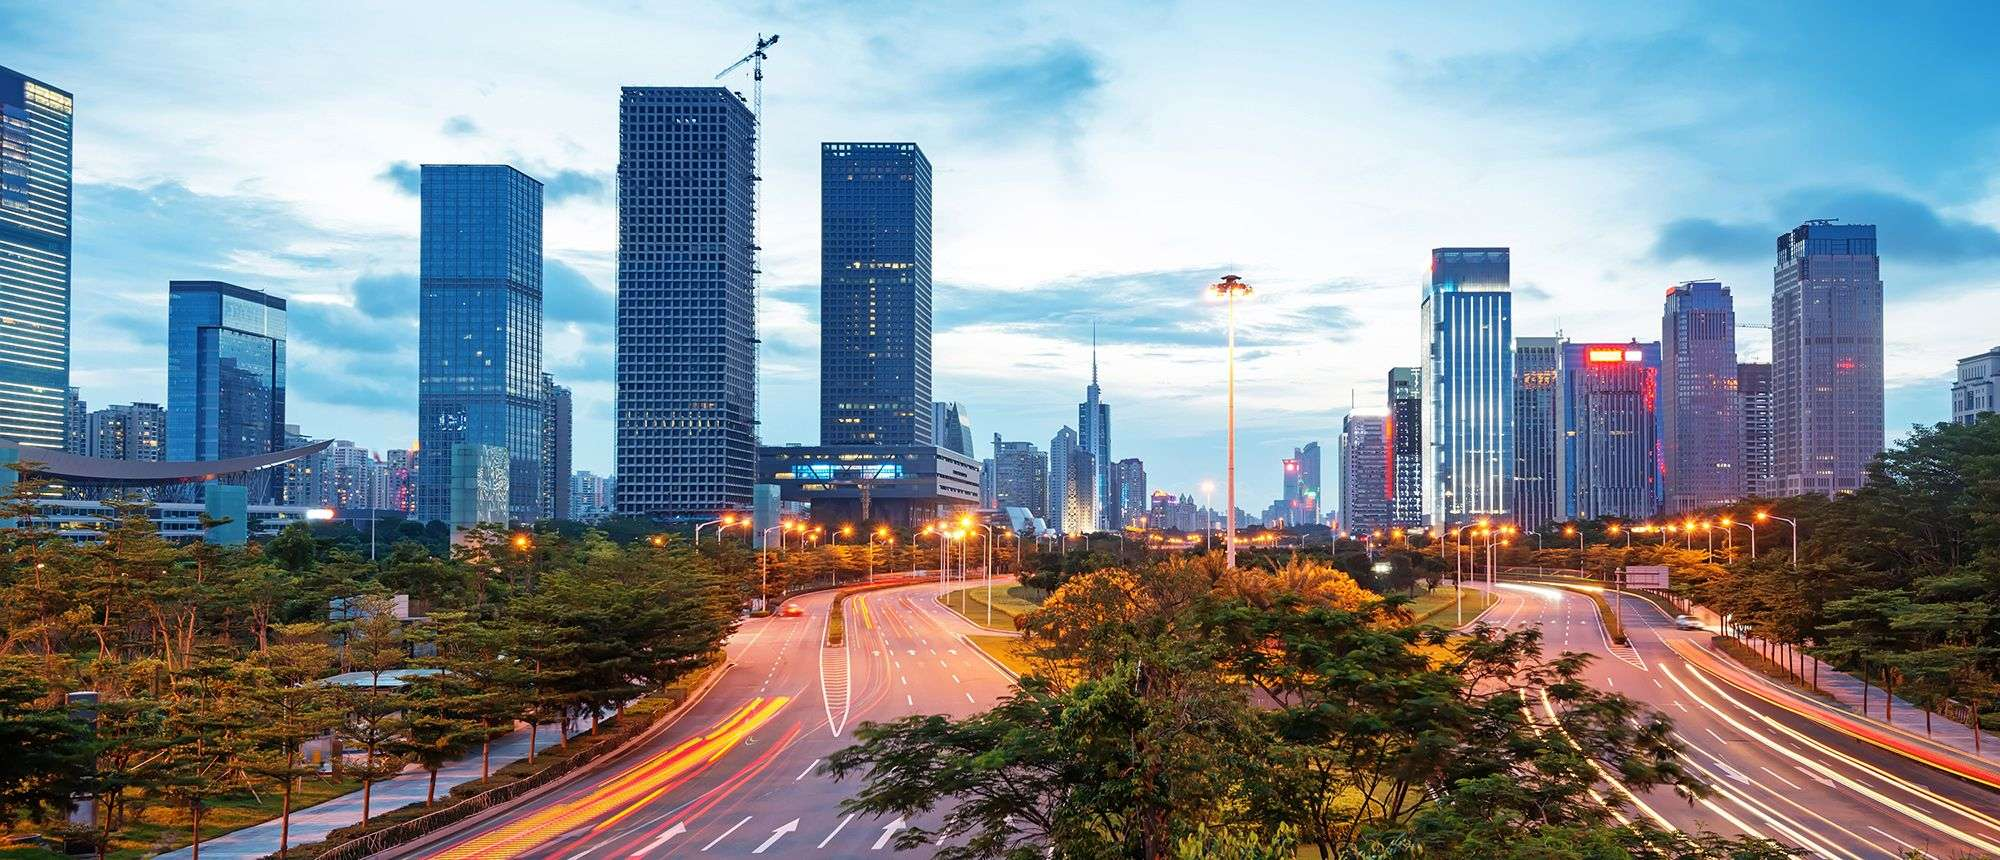 A view of buildings and roads Guangdong city